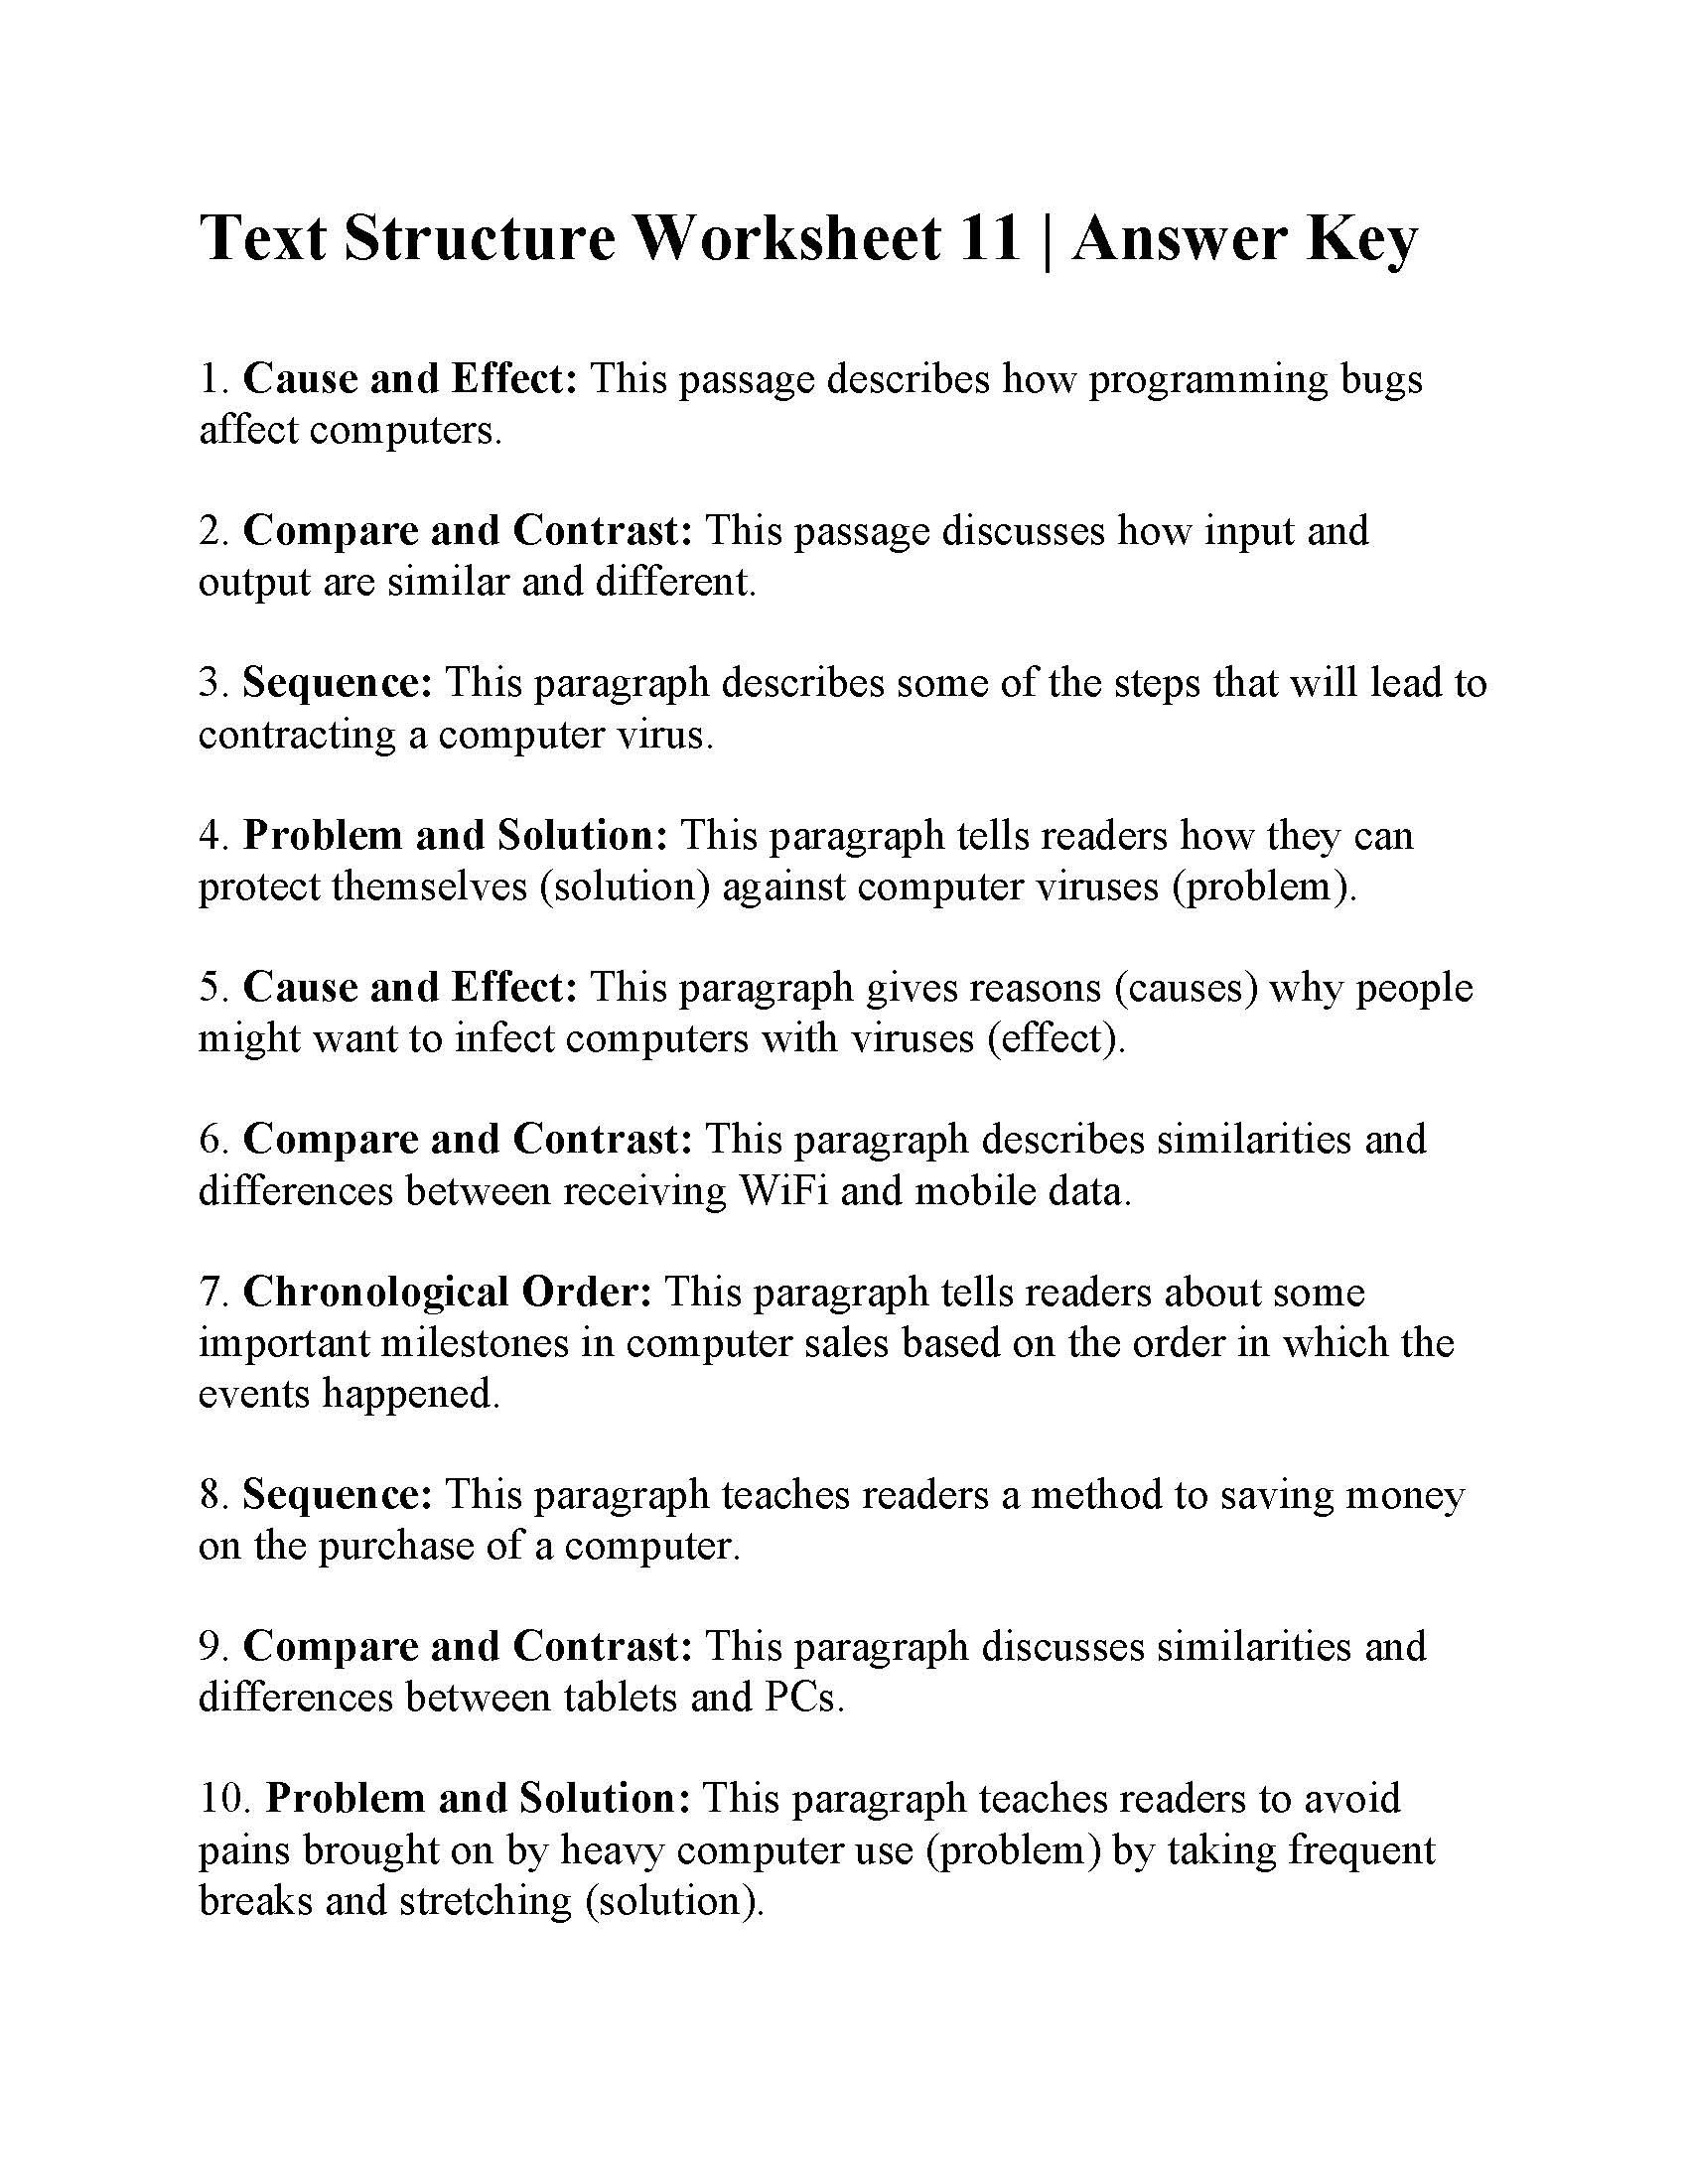 Text Structure Worksheets 3rd Grade Text Structure Worksheet Answers Ereading Worksheets Kumon